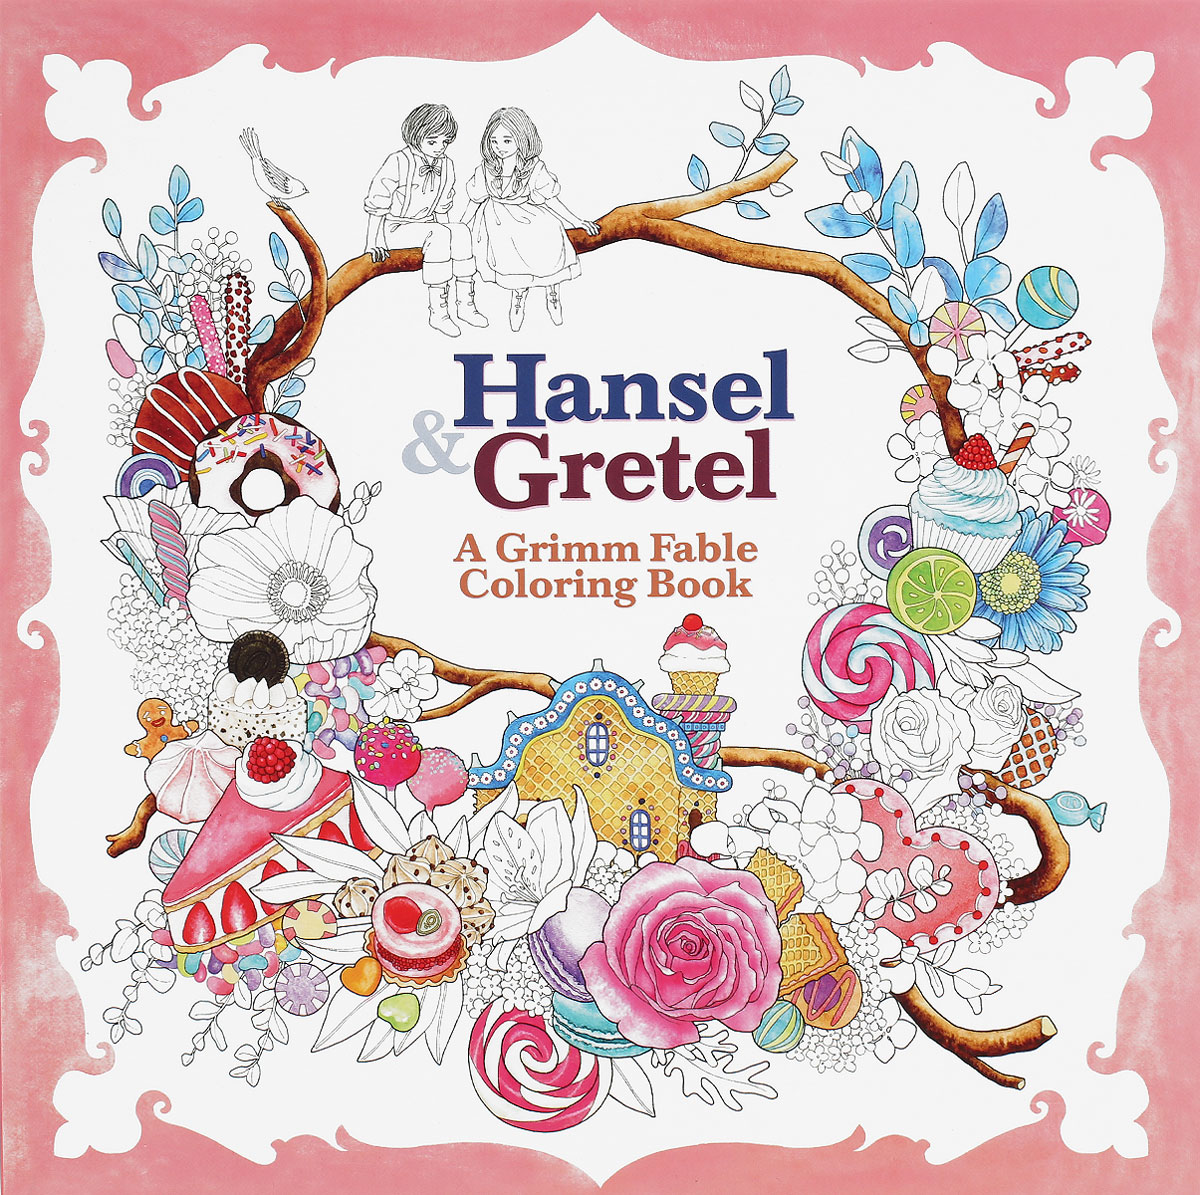 Hansel & Gretel: A Grimm Fable Coloring Book wooden ancient bookmarks chinese complex classical teachers festival gifts bookmarks creative bookmarks sets m097